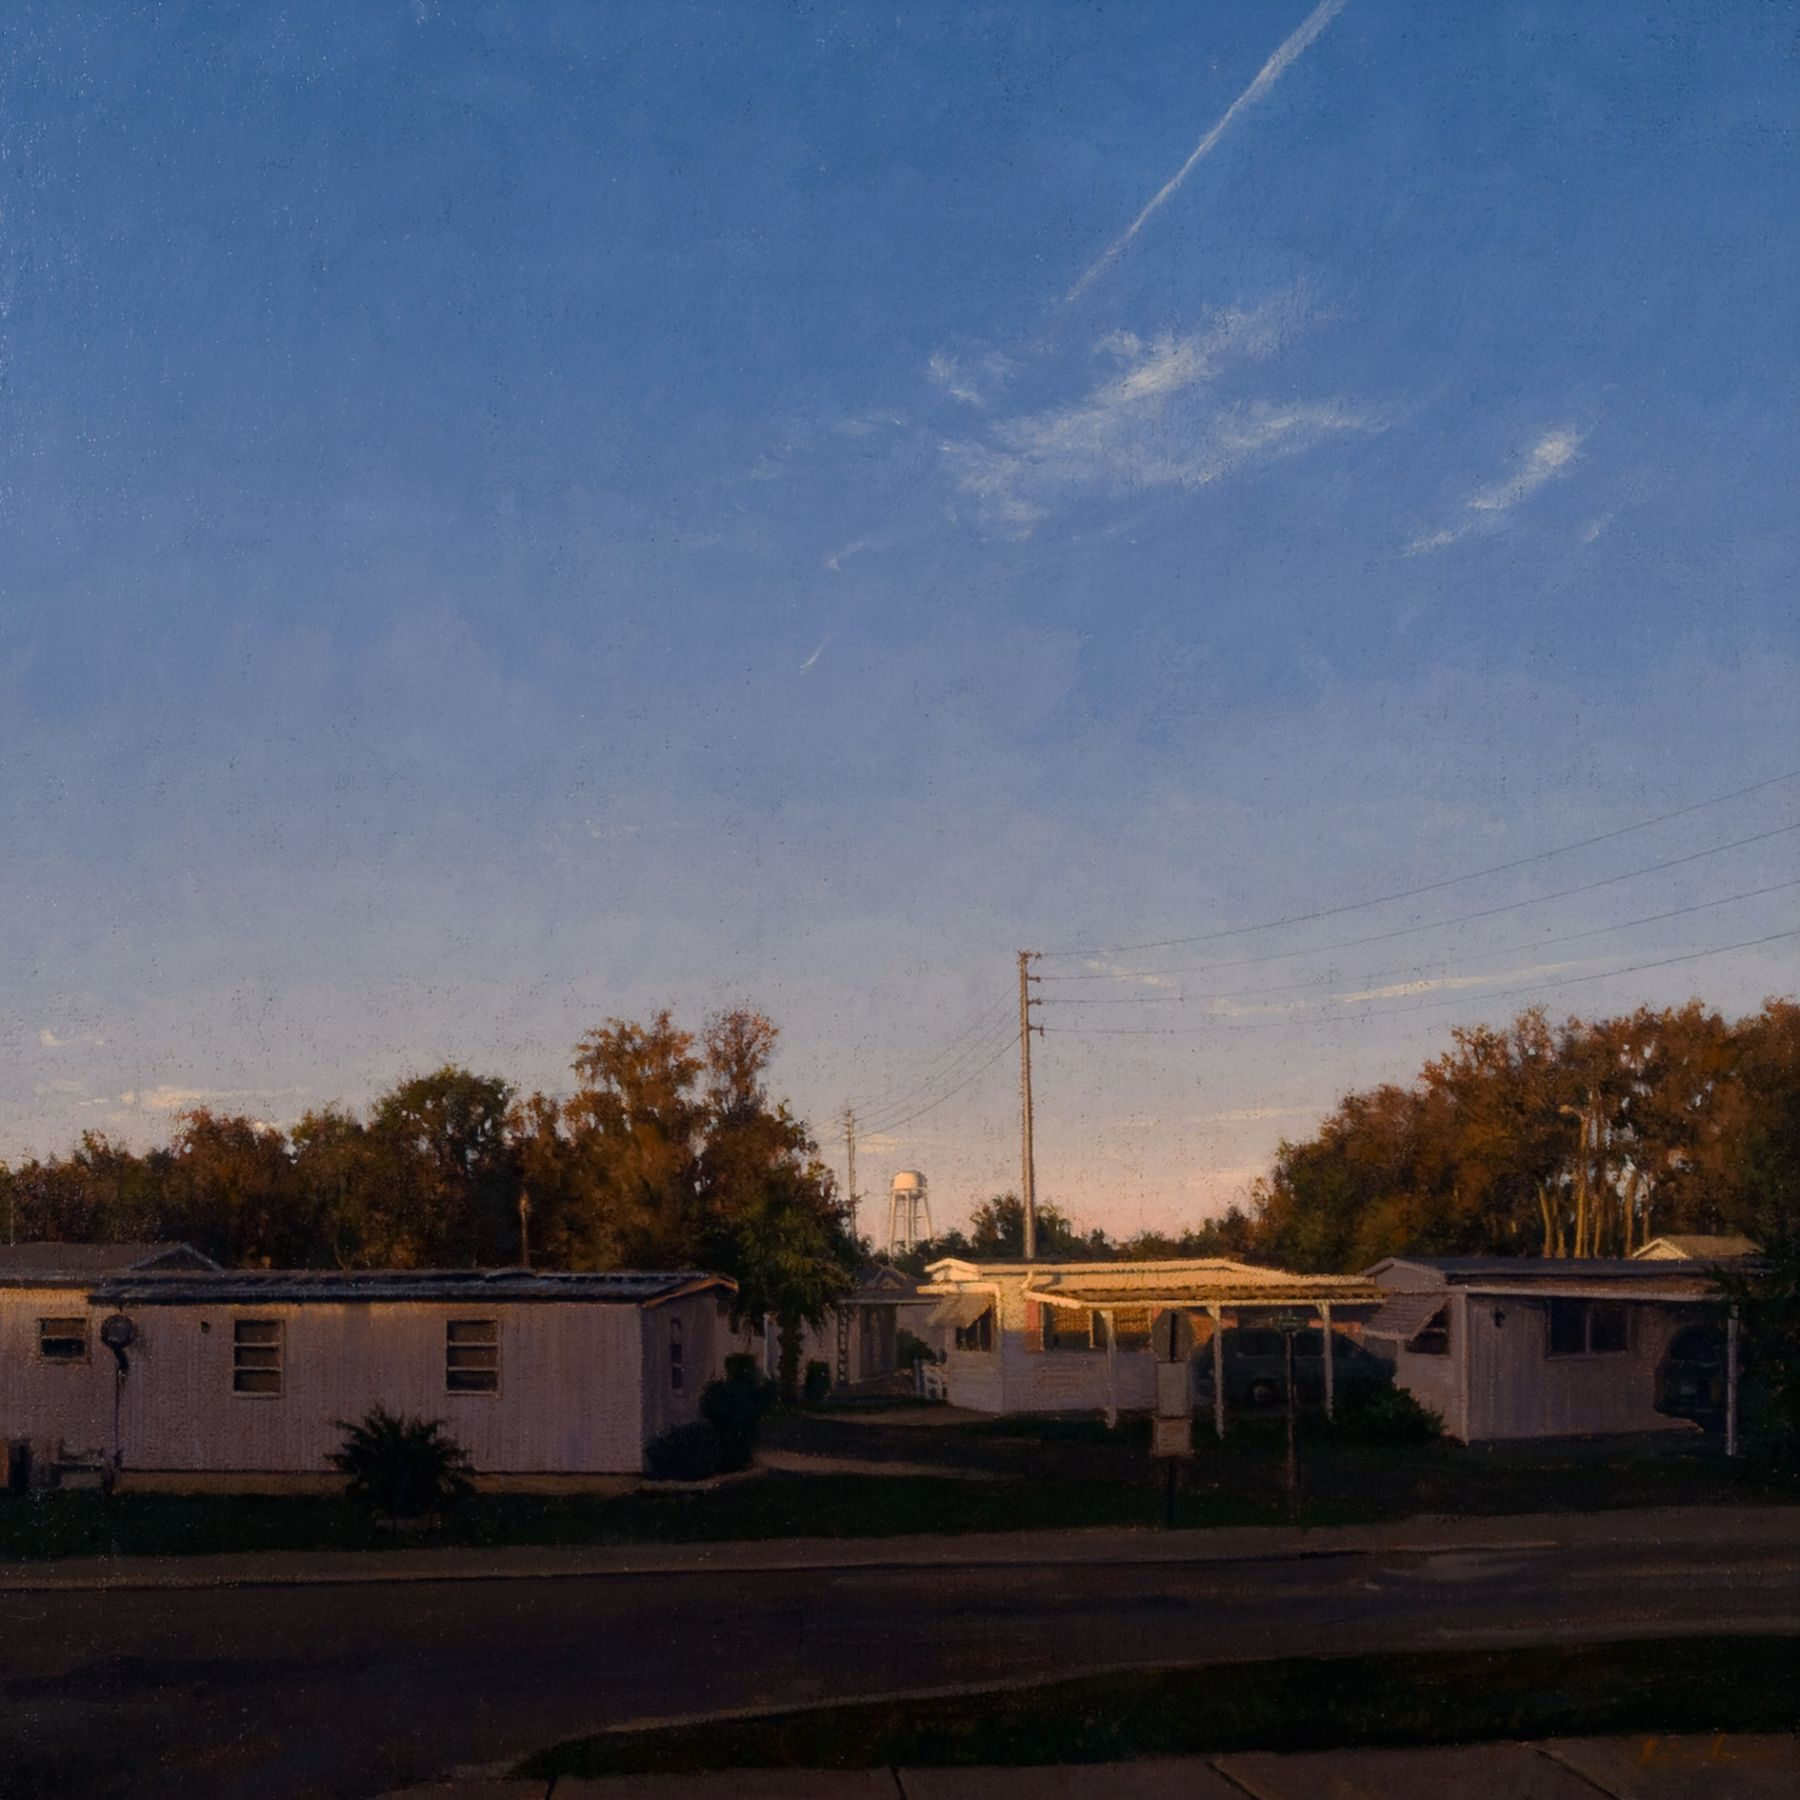 Linden Frederick, Shady Rest, 2007, oil on panel, 12 1/4 x 12 1/4 inches